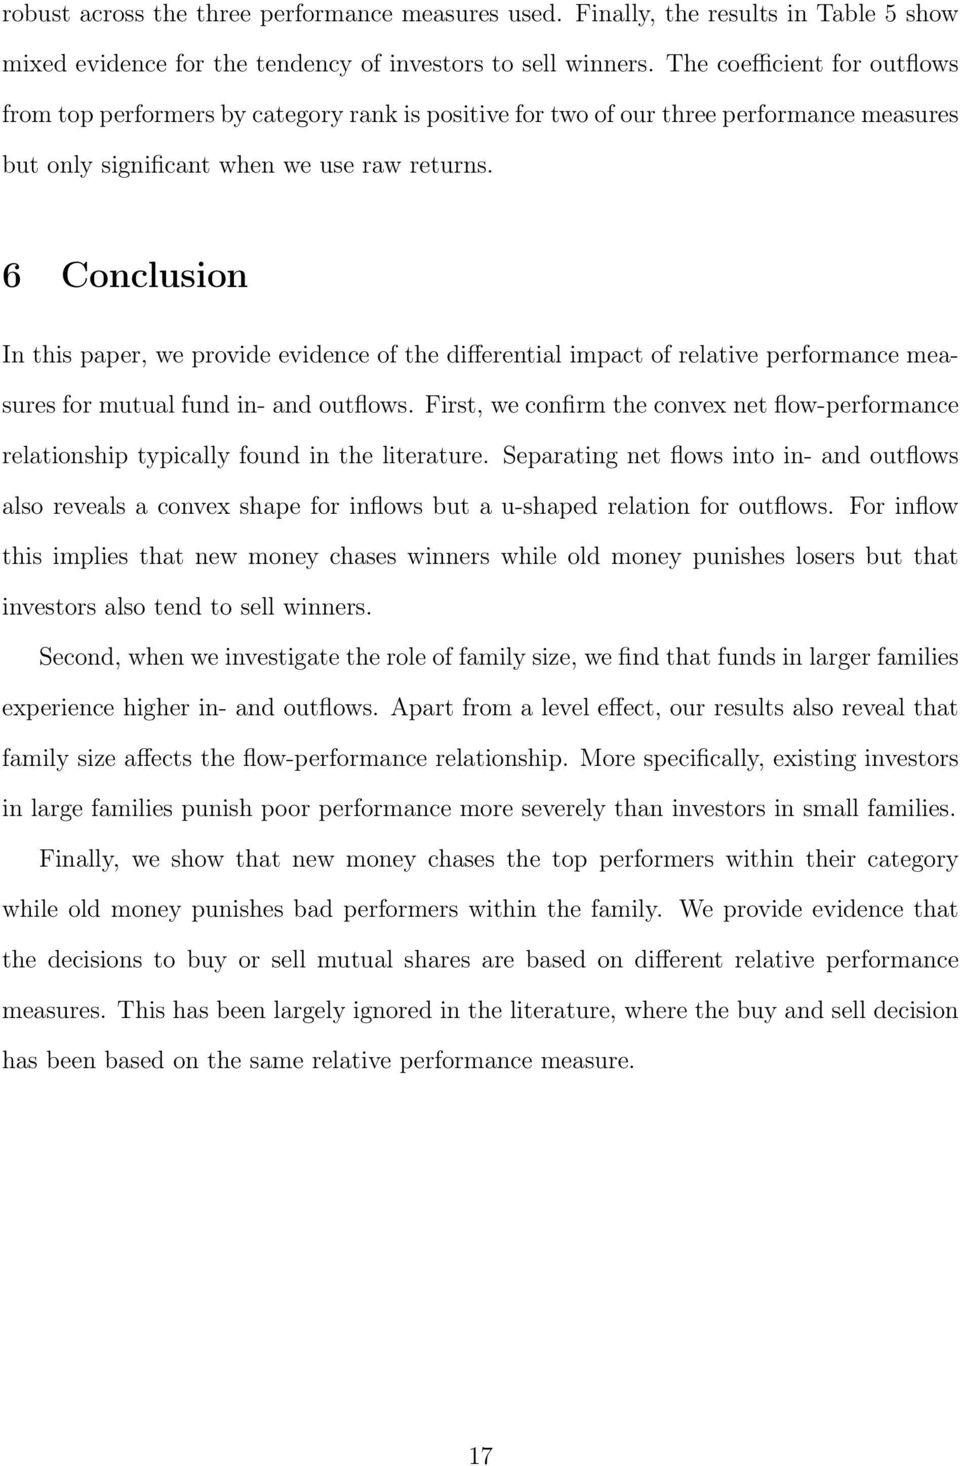 6 Conclusion In this paper, we provide evidence of the differential impact of relative performance measures for mutual fund in- and outflows.